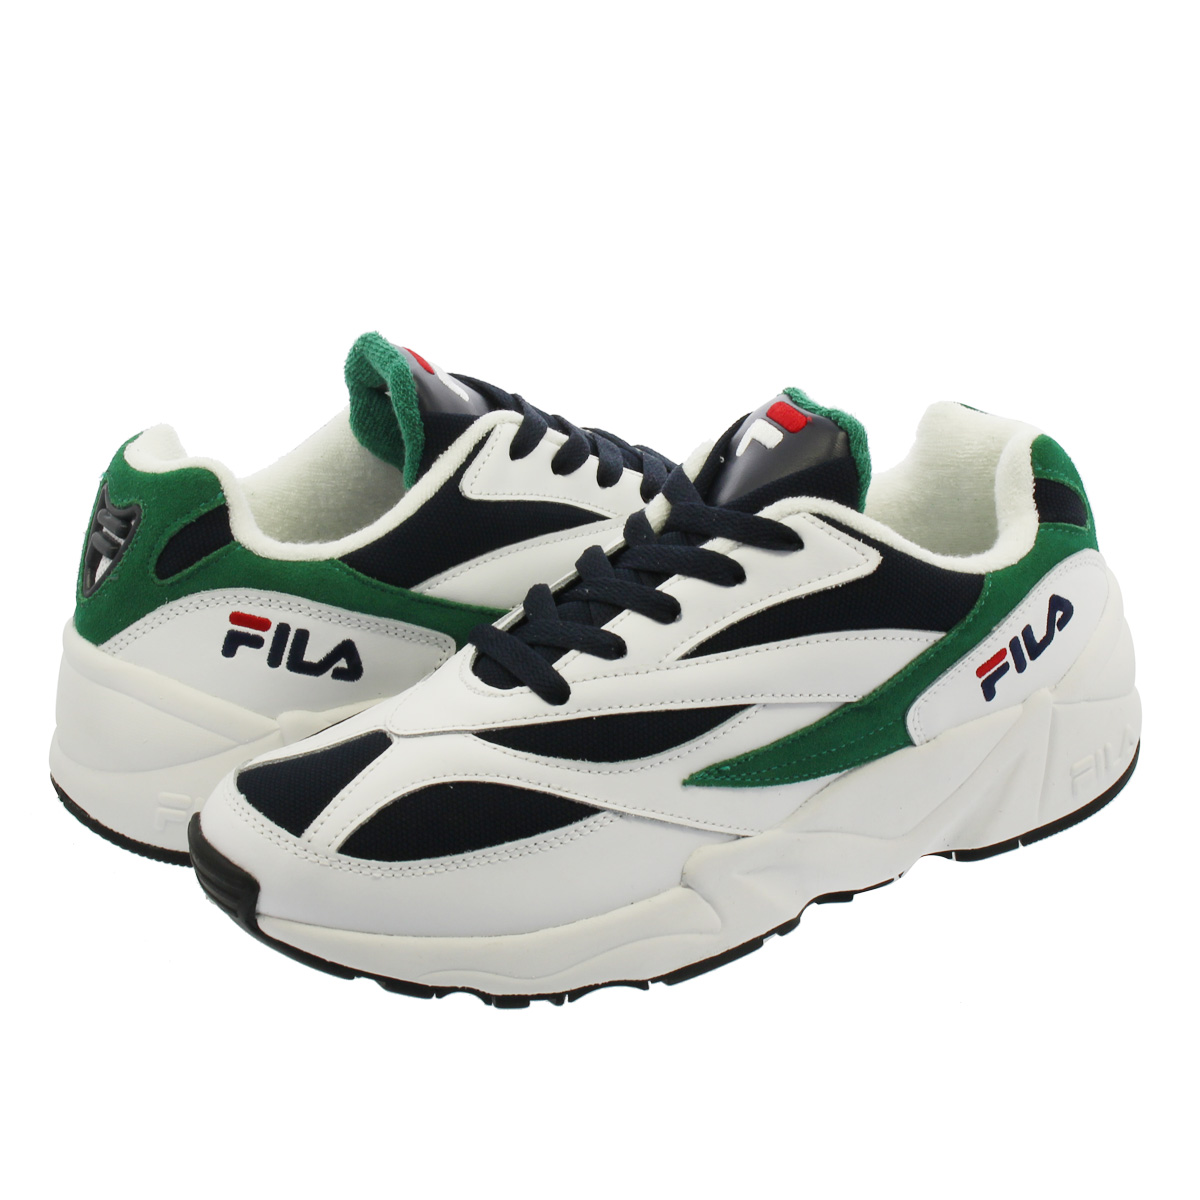 FILA VENOM フィラ ベノム WHITE/NAVY/GREEN f0305-000q